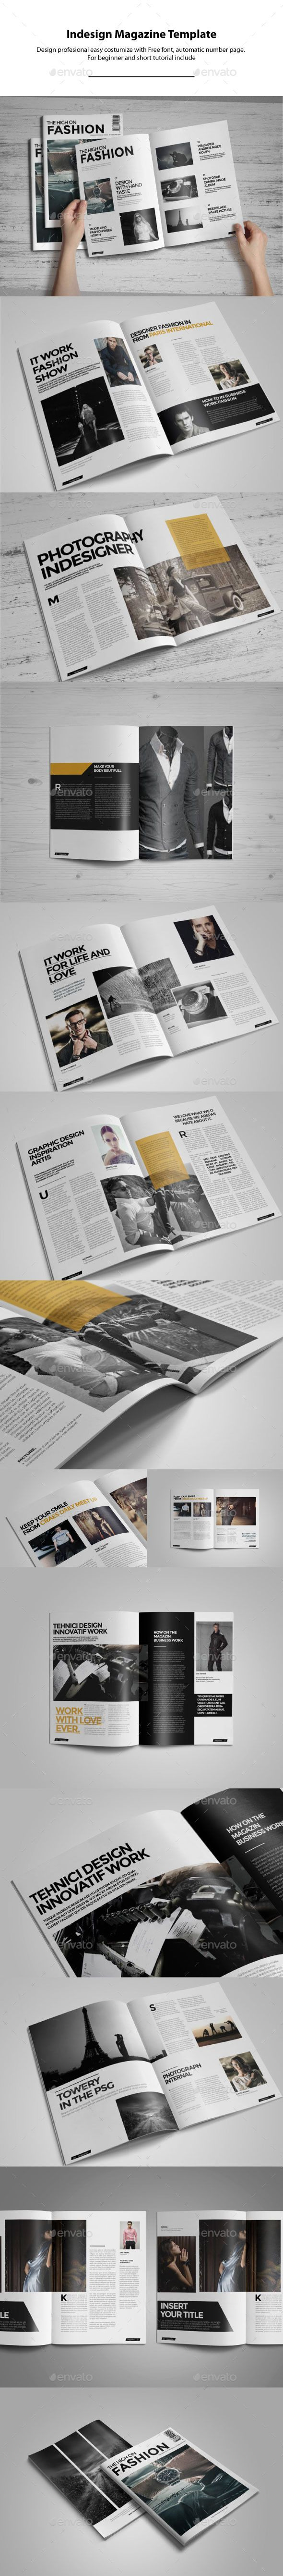 Indesign Magazine Template #design #journal Download: http://graphicriver.net/item/indesign-magazine-template/10635992?ref=ksioks